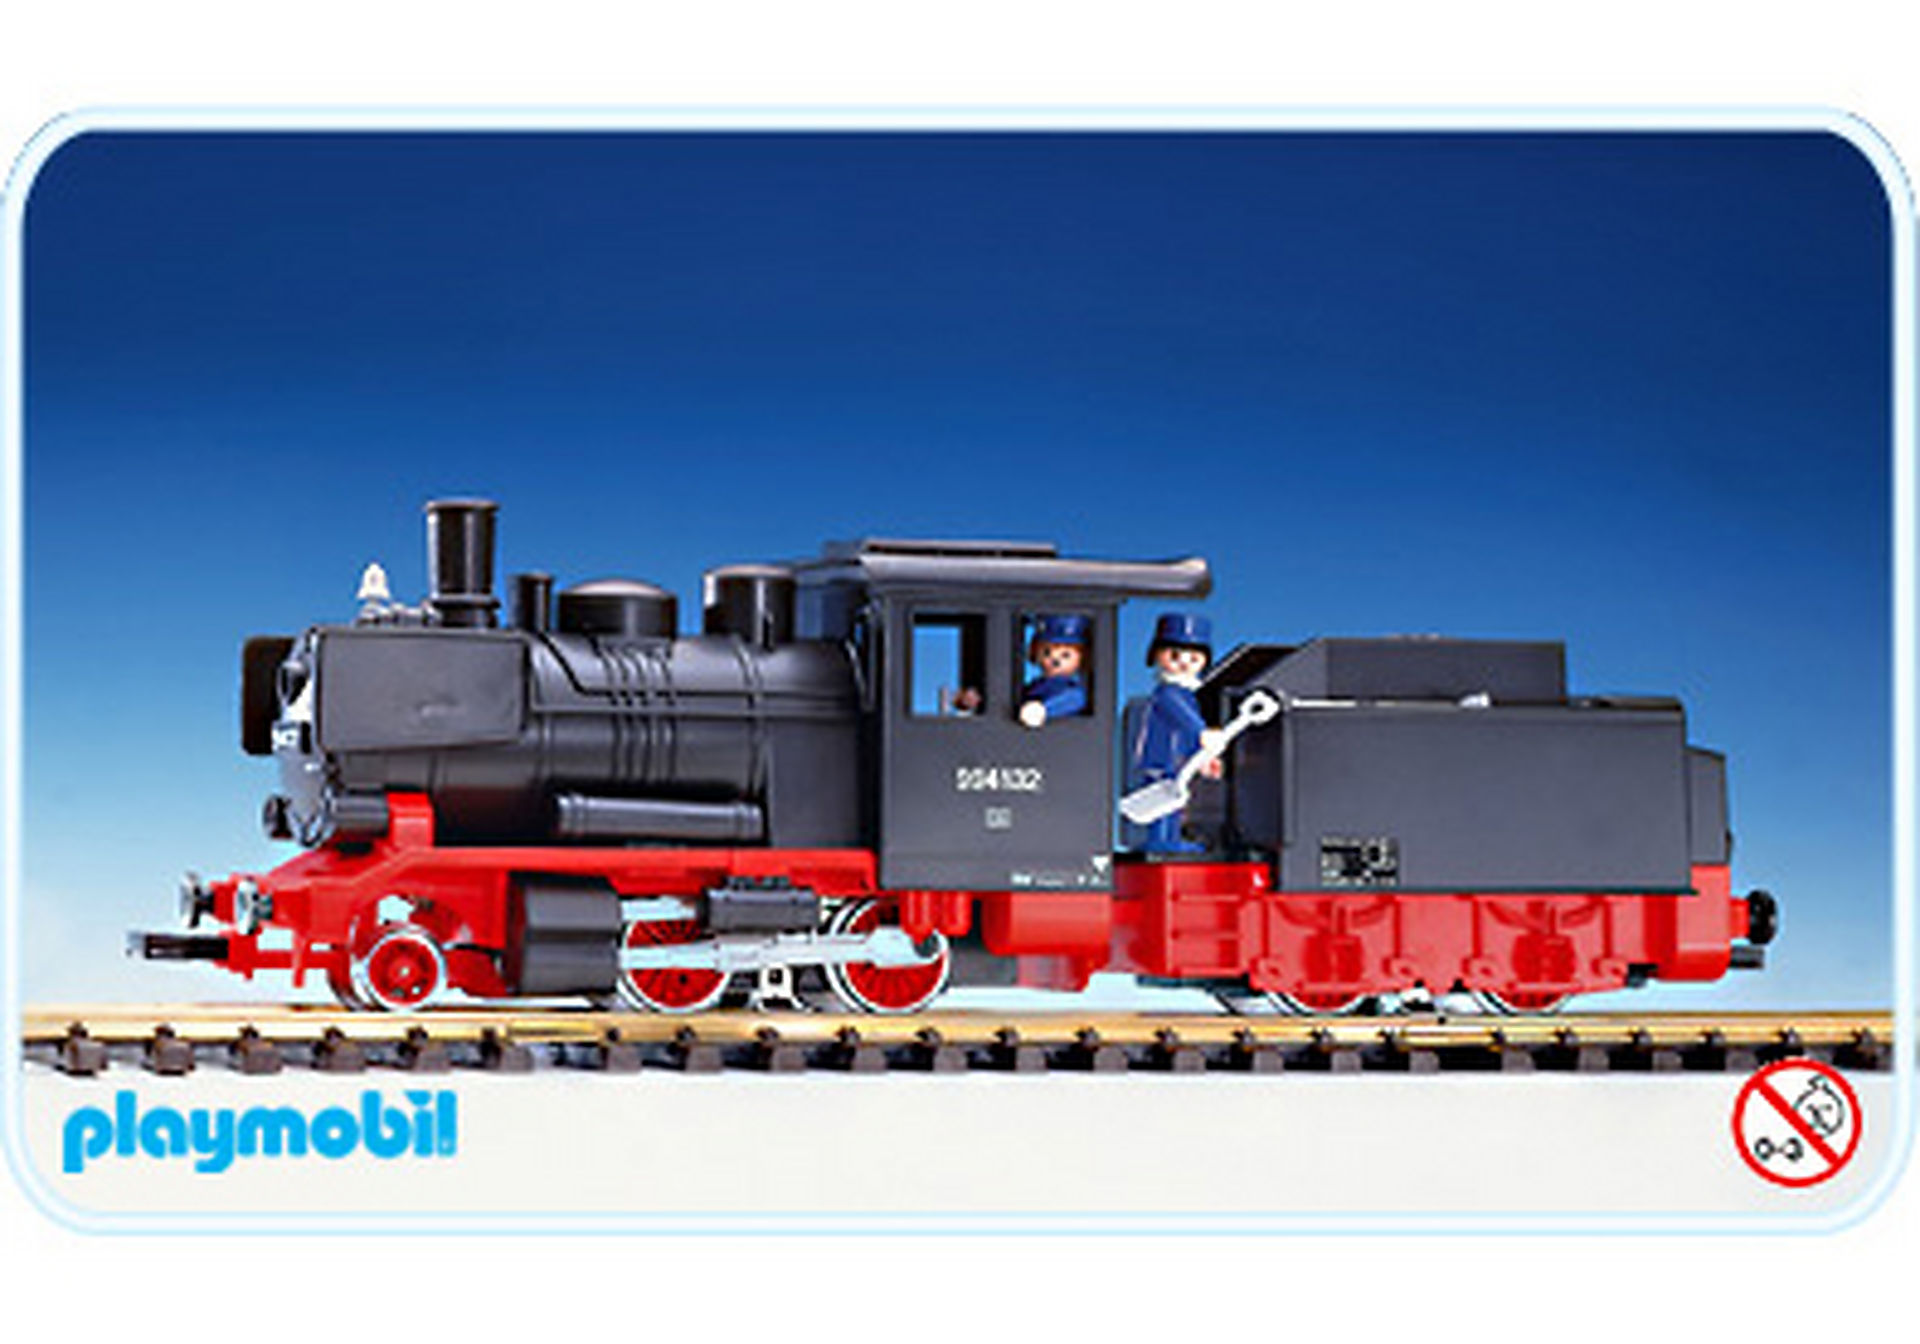 http://media.playmobil.com/i/playmobil/4052-A_product_detail/Schlepp-Tender-Lok